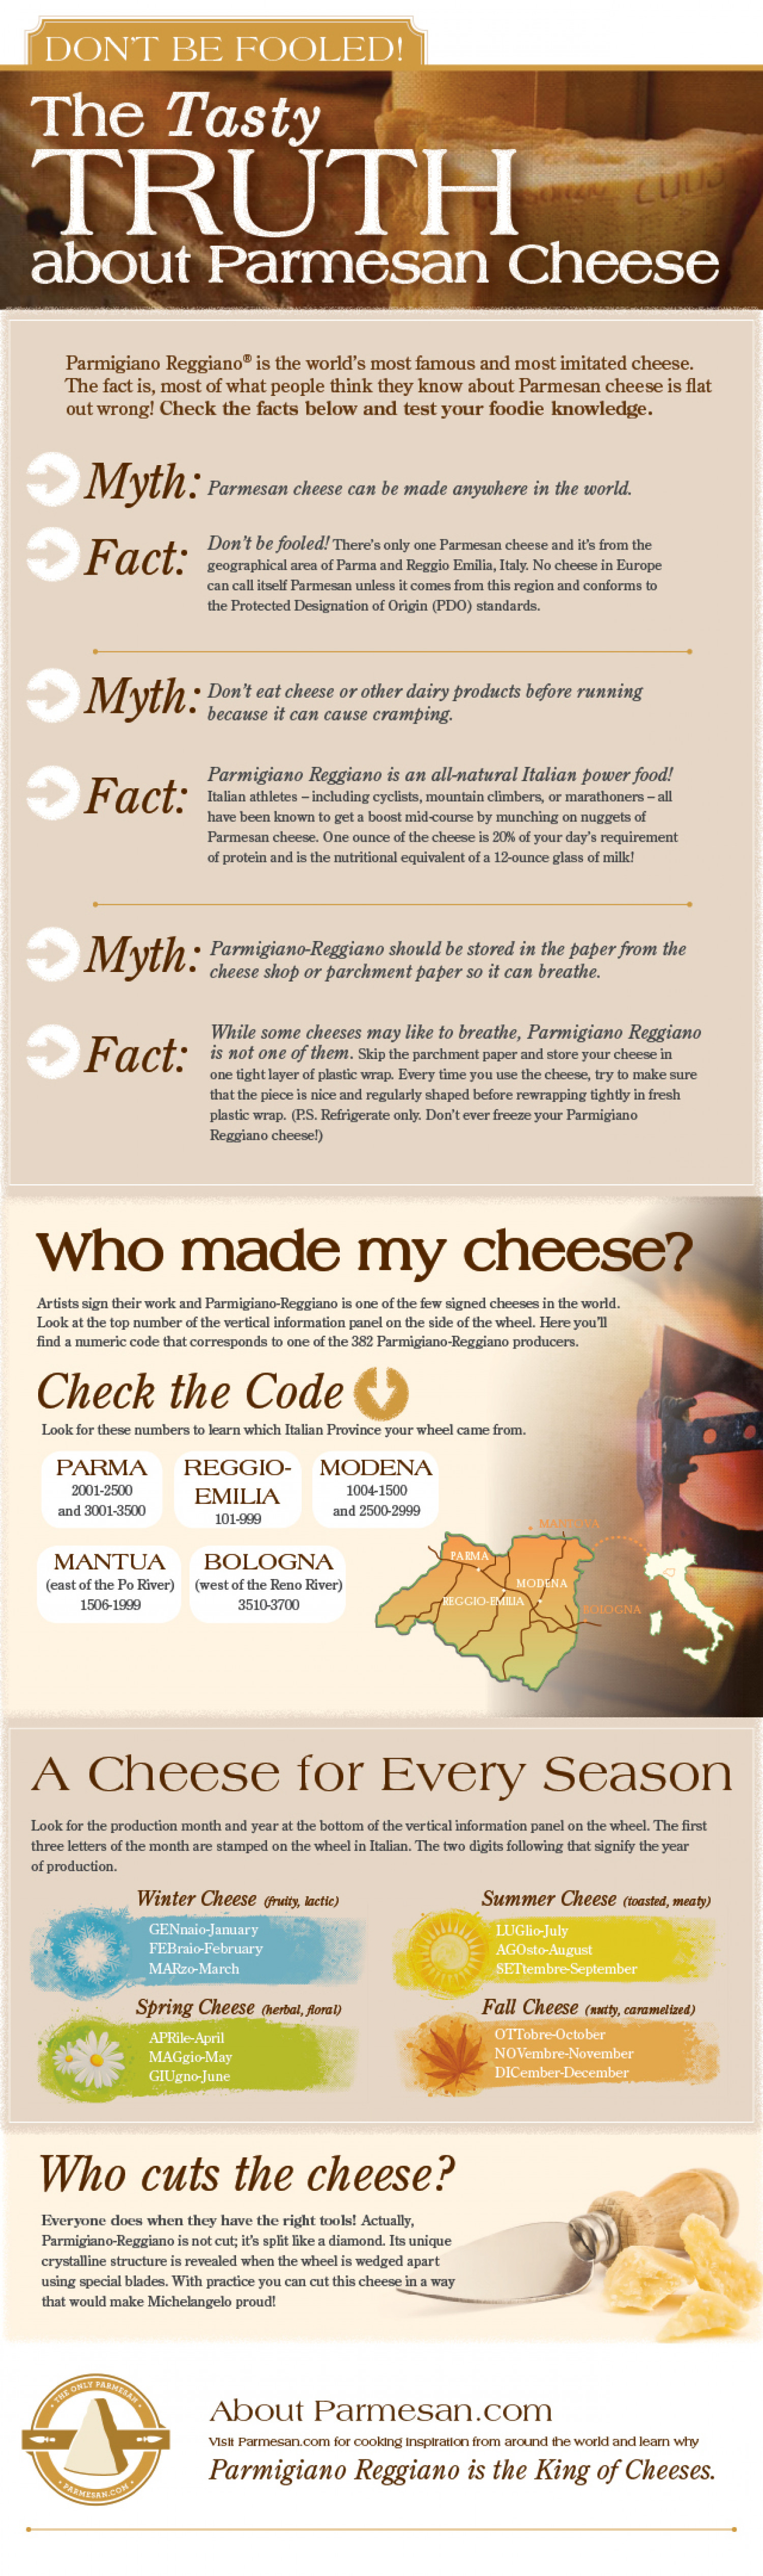 The Tasty Truth About Parmesan Cheese